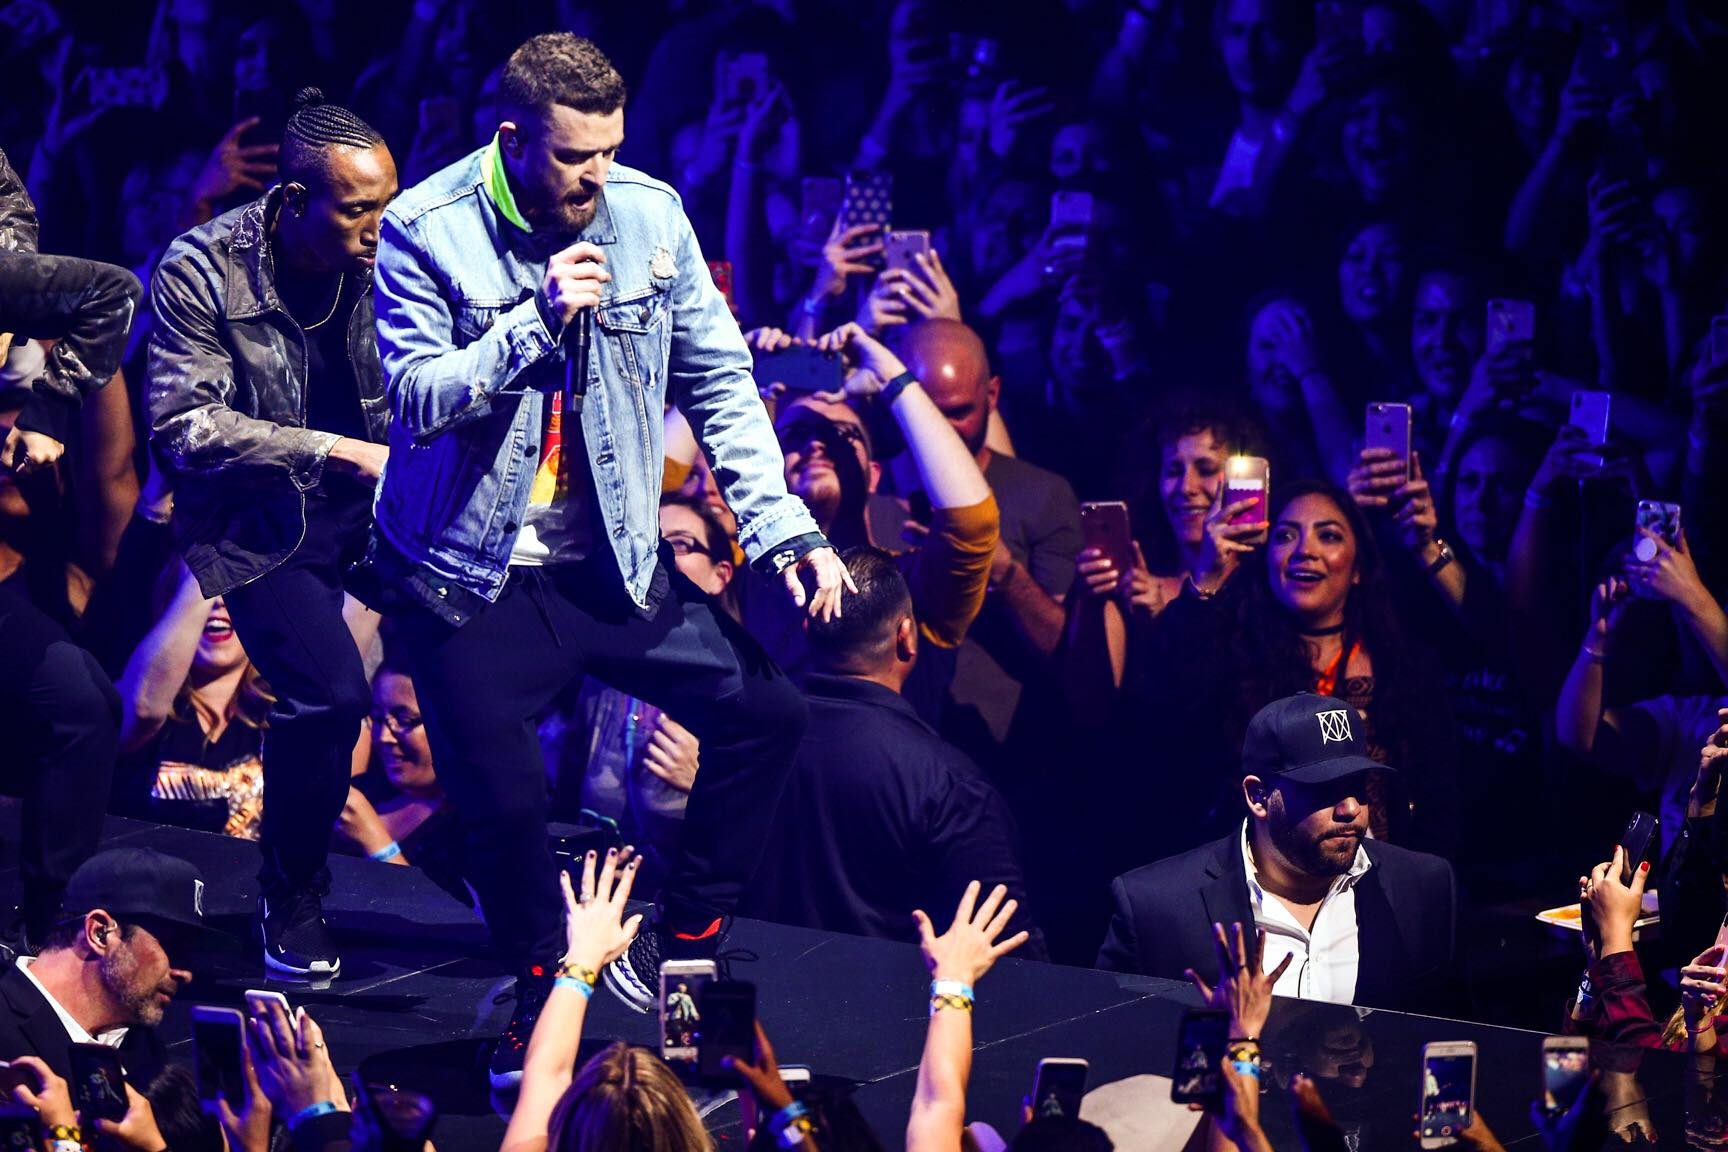 """Justin Timberlake performs during his """"Man of the Woods"""" tour at The Forum in Inglewood, Calif., on April 28, 2018"""